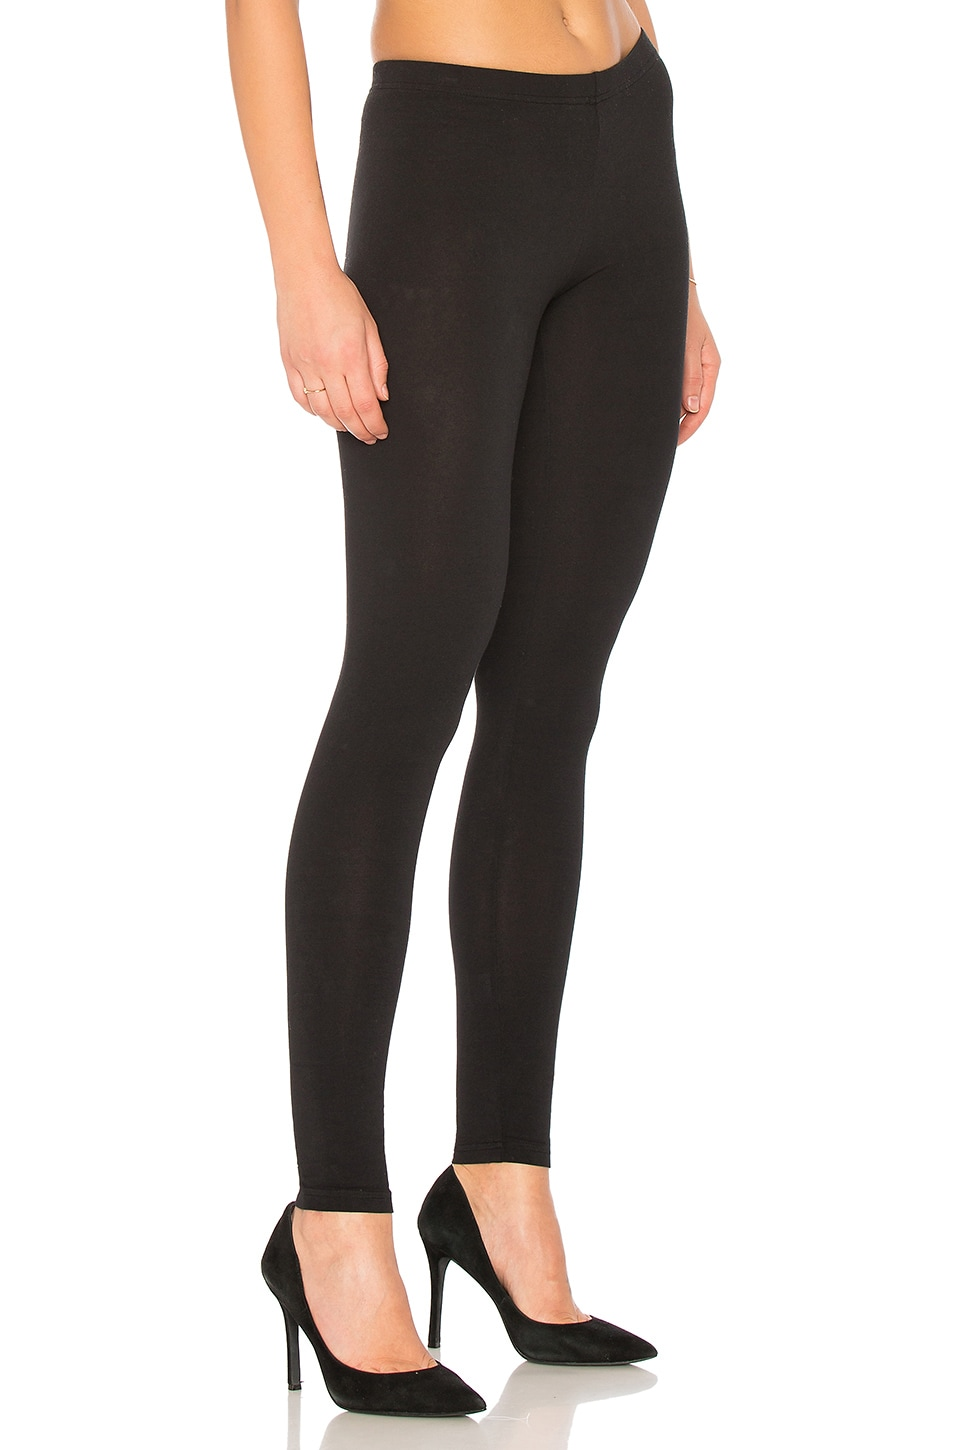 Bobi Cotton Lycra Pants in Black